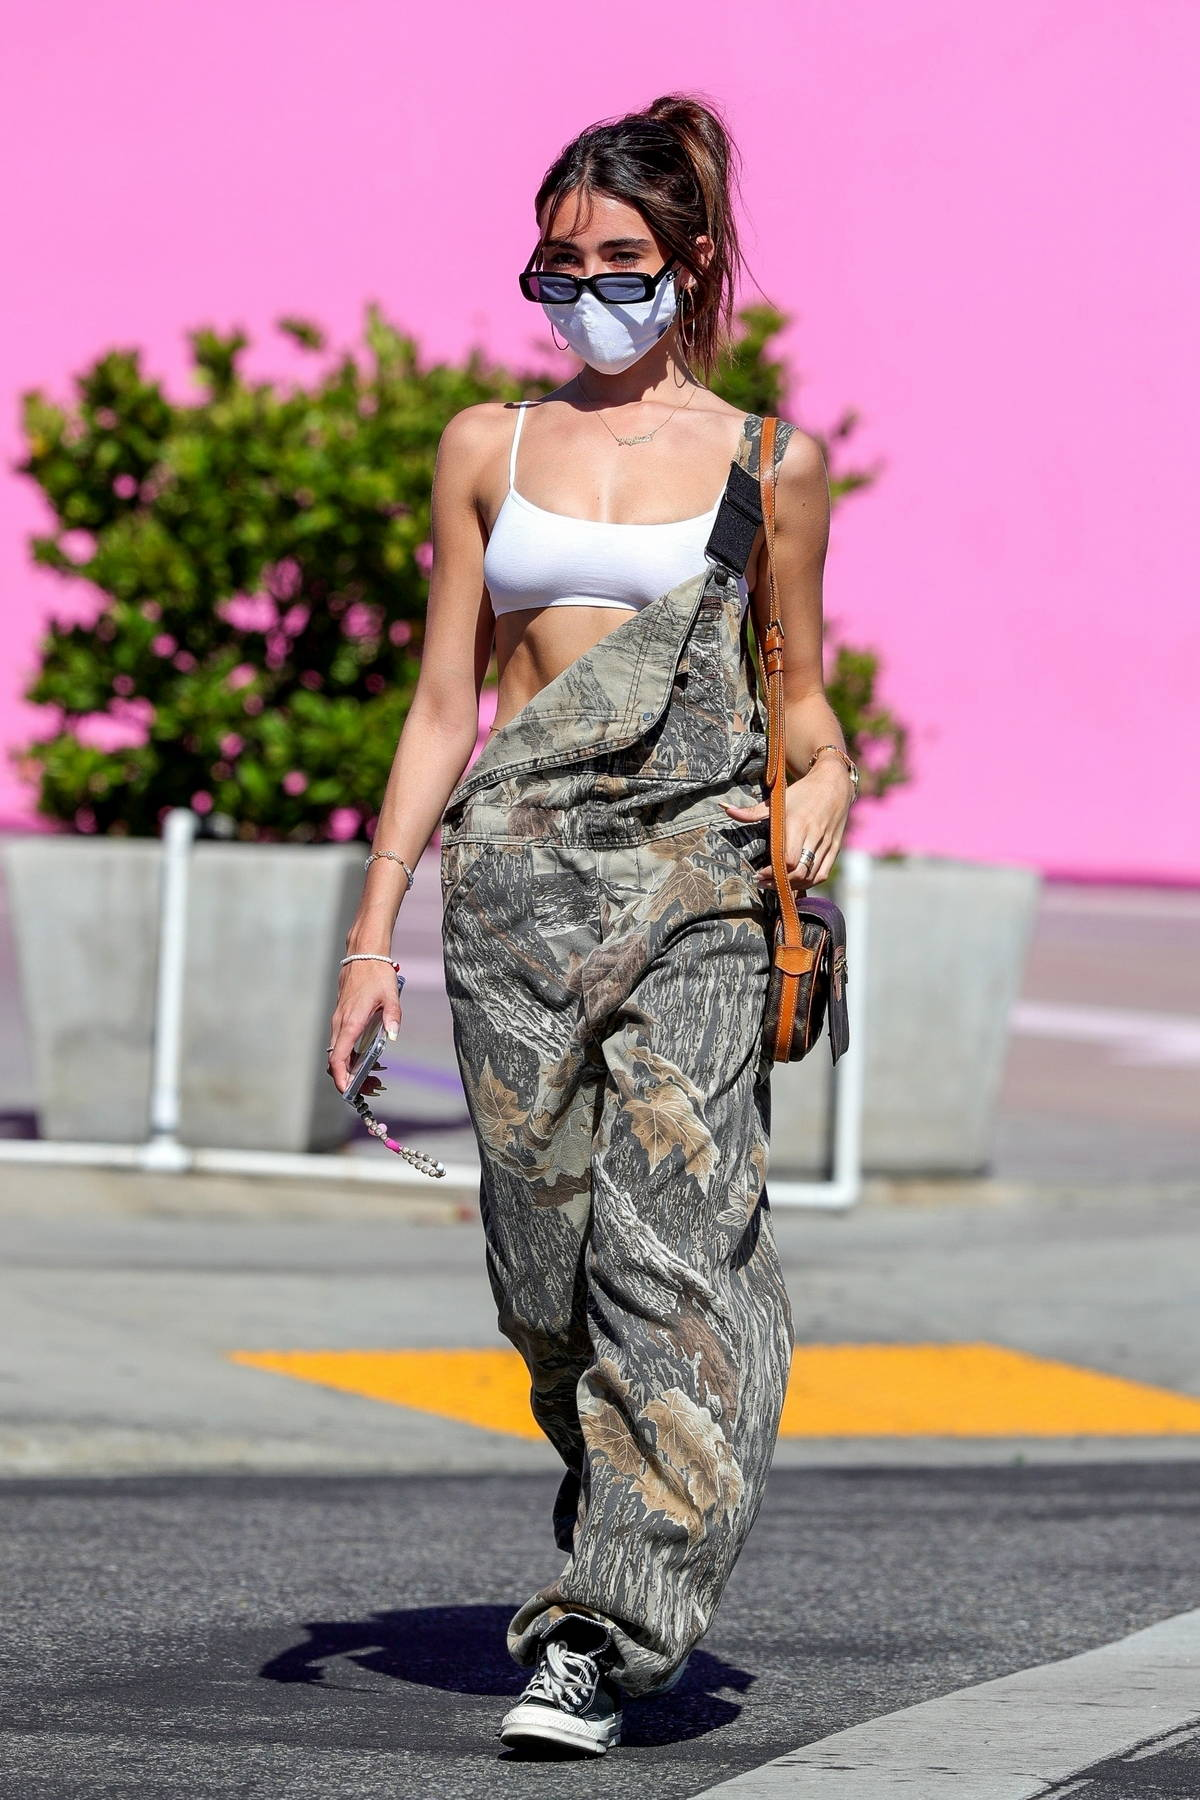 Madison Beer looks cute in camo overalls and a white sports bra while out for late lunch in West Hollywood, California